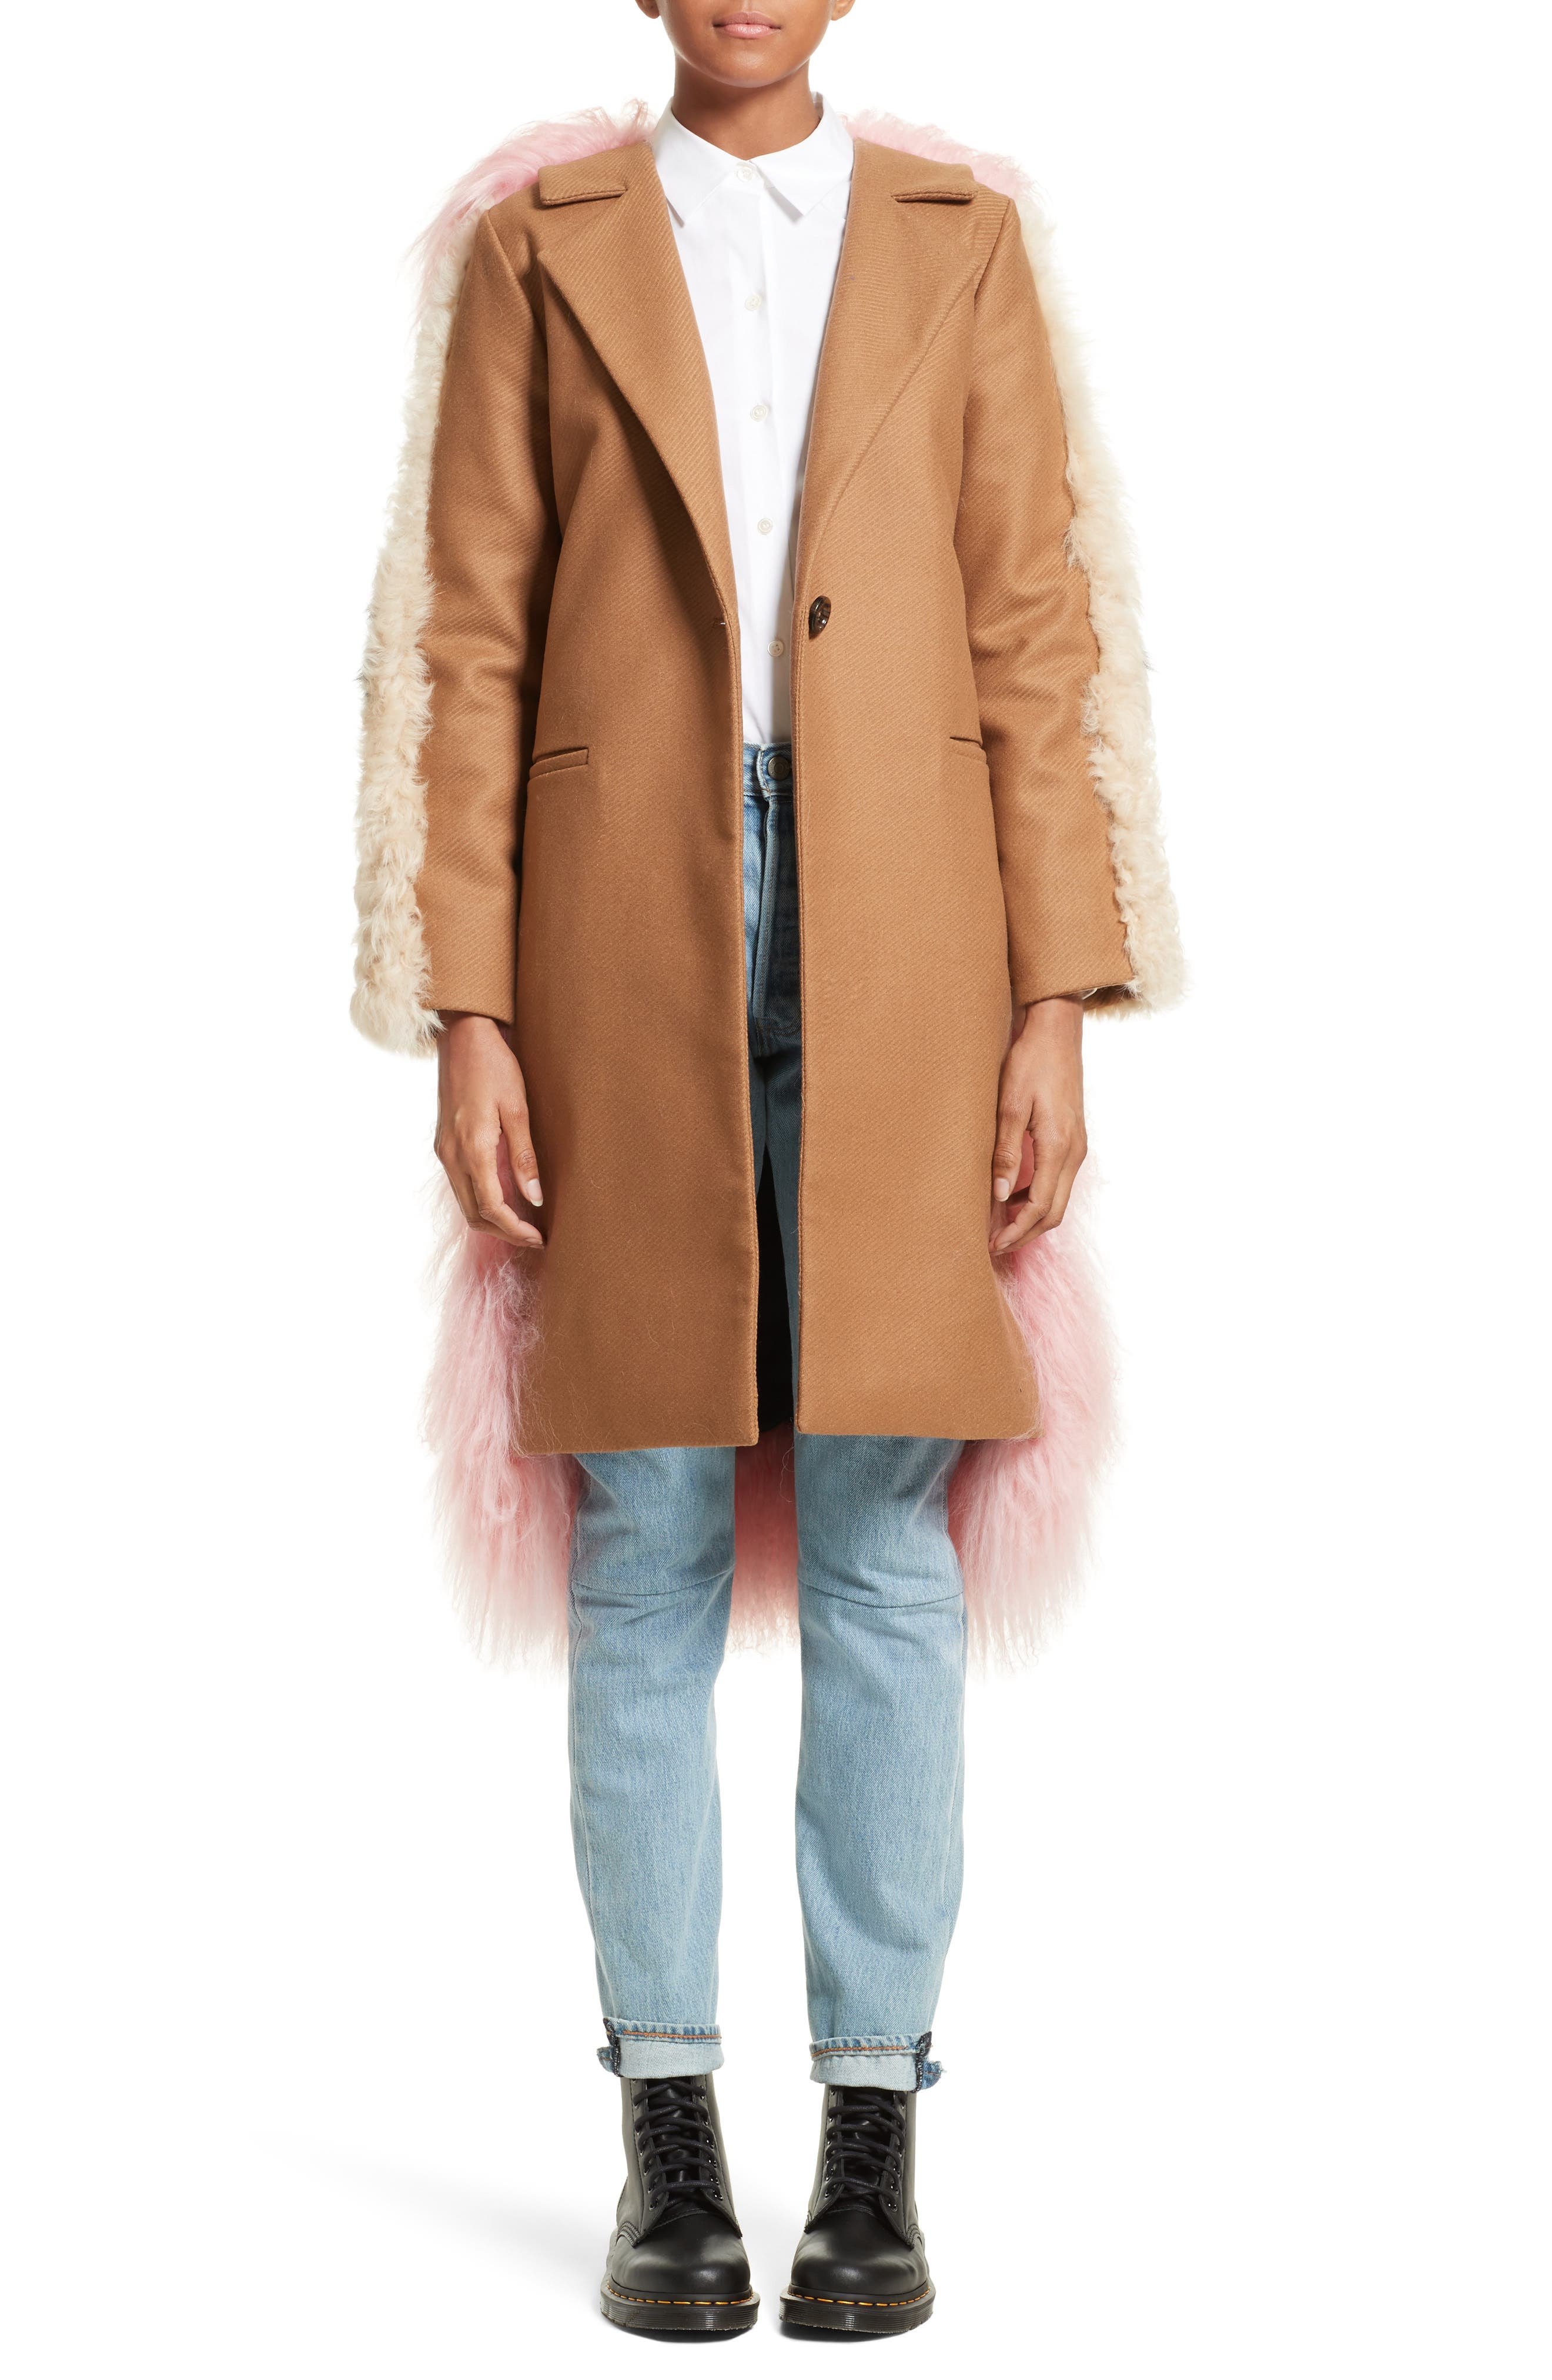 Mingo Wool Blend & Genuine Shearling Coat,                             Main thumbnail 1, color,                             Curry Pink